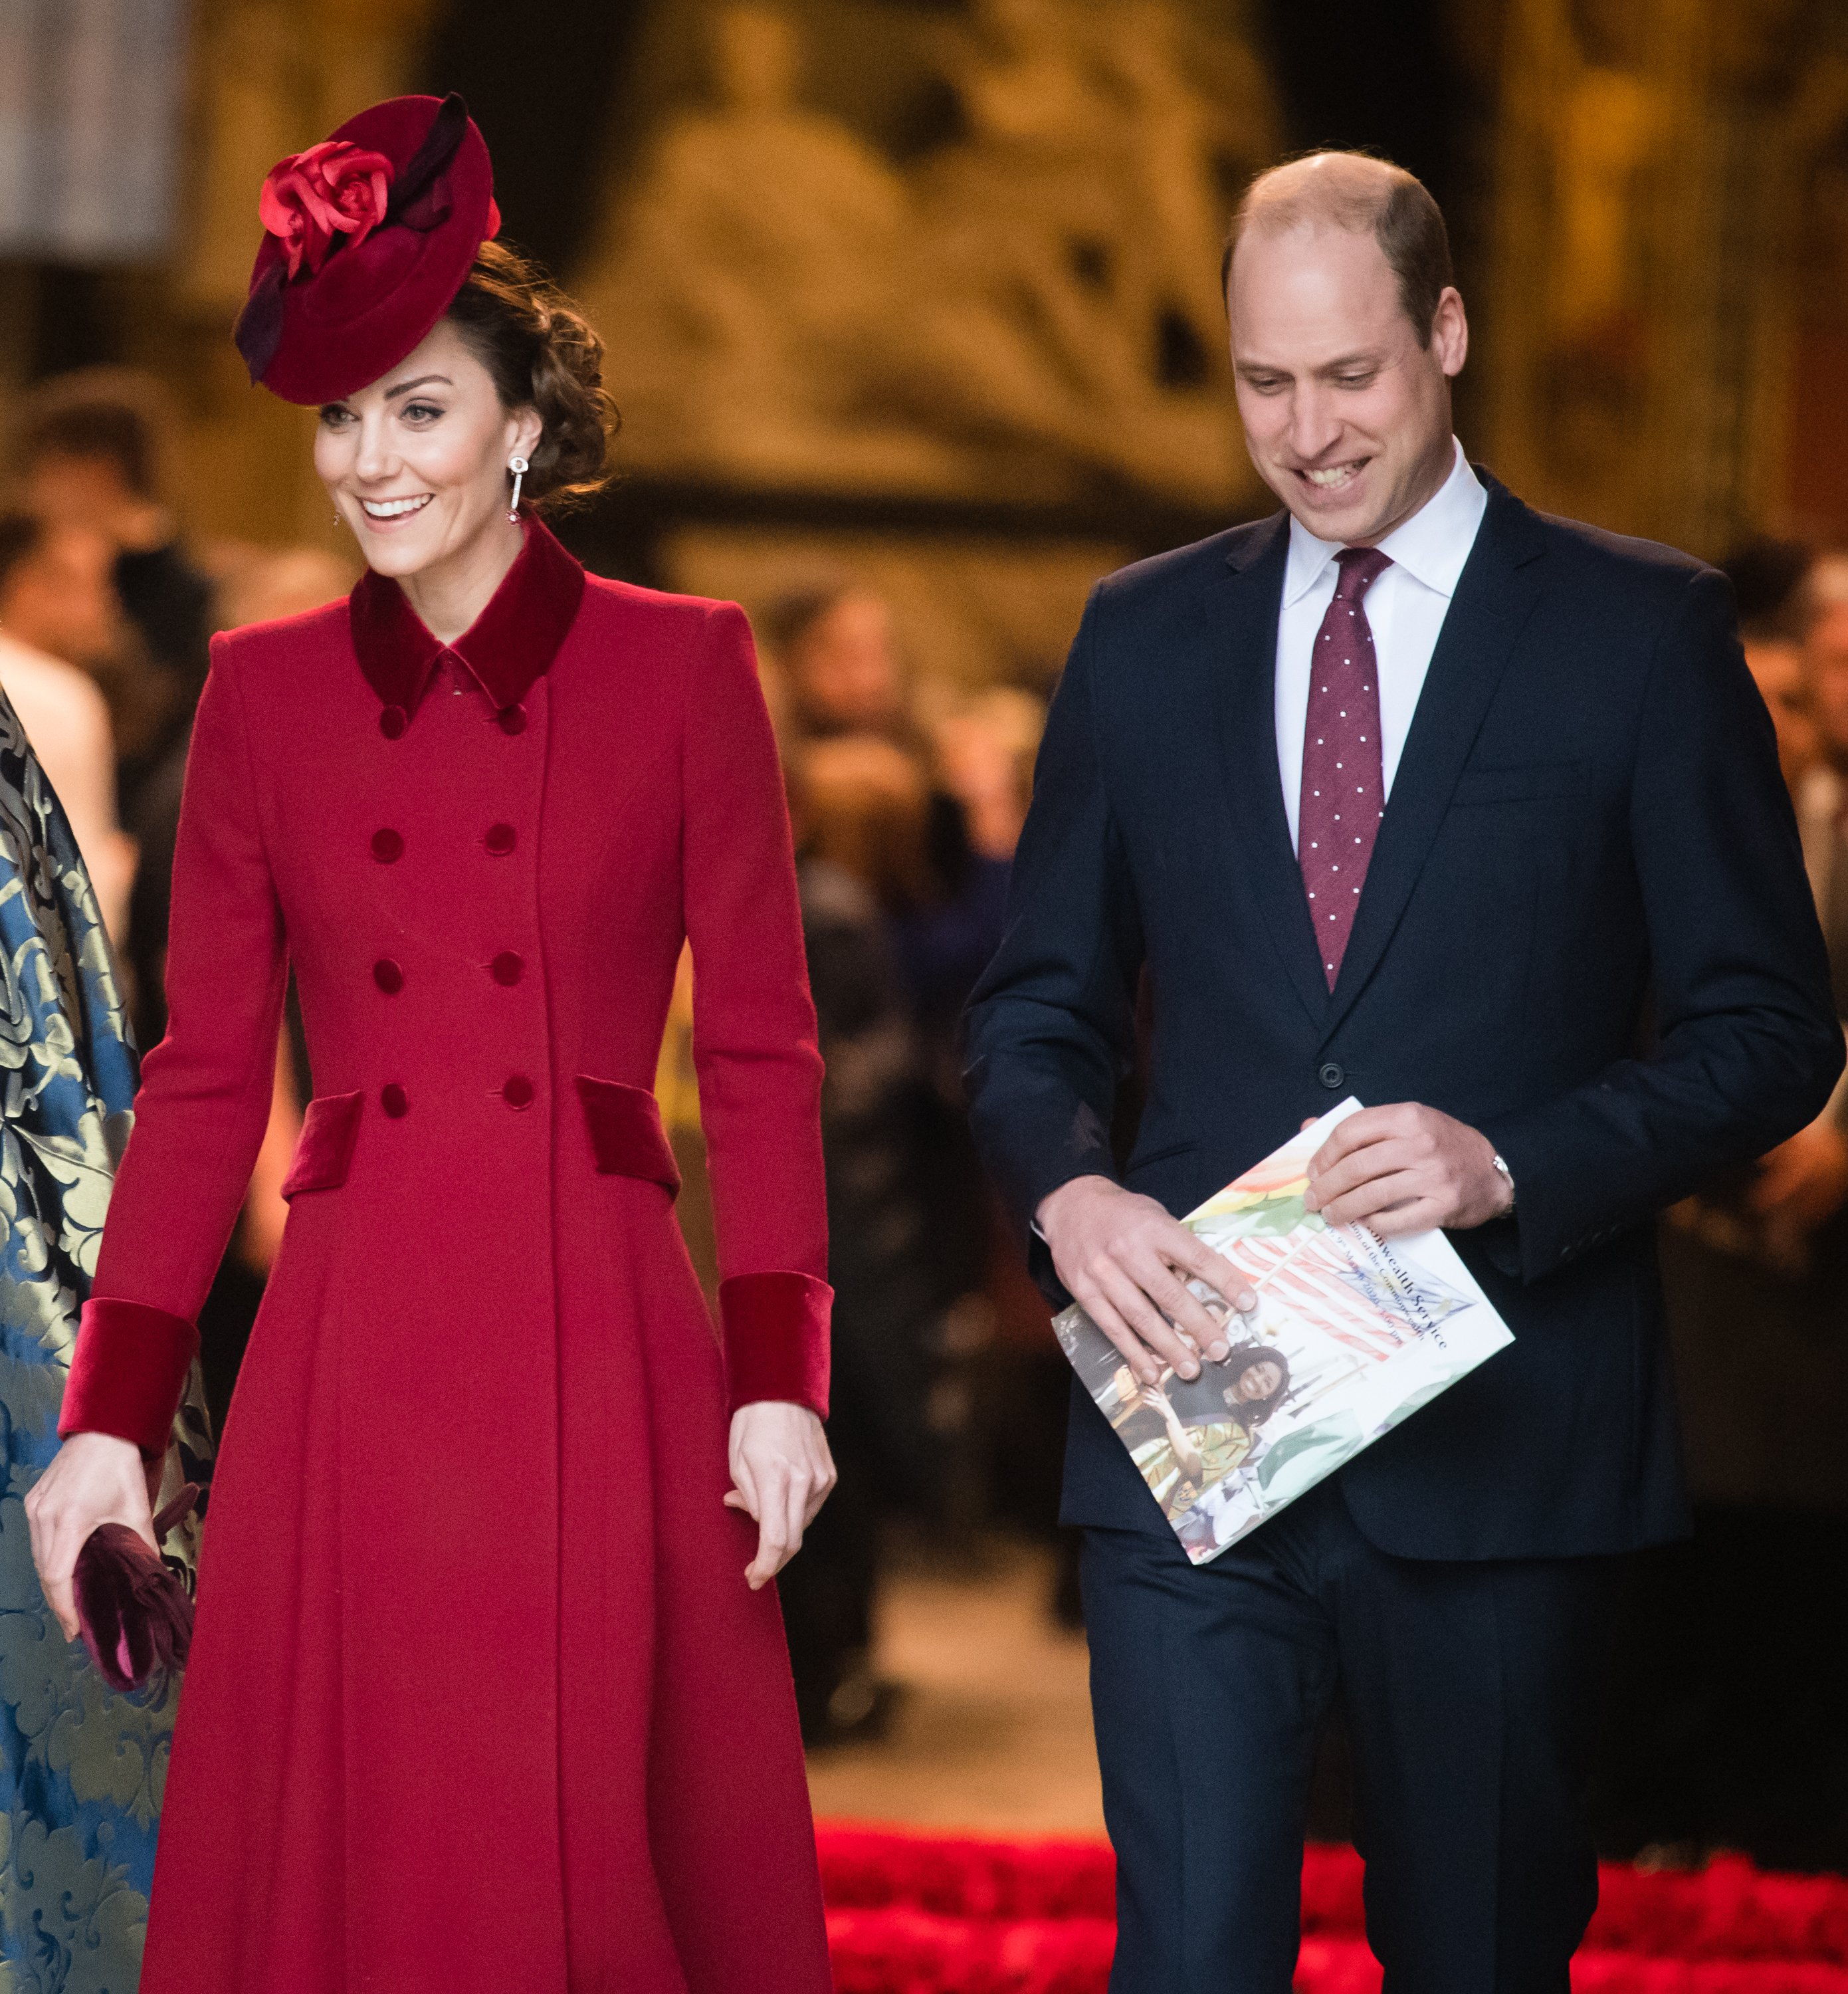 Kate Middleton and Prince William attend the Commonwealth Day Service 2020 on March 09, 2020, in London, England. | Source: Getty Images.